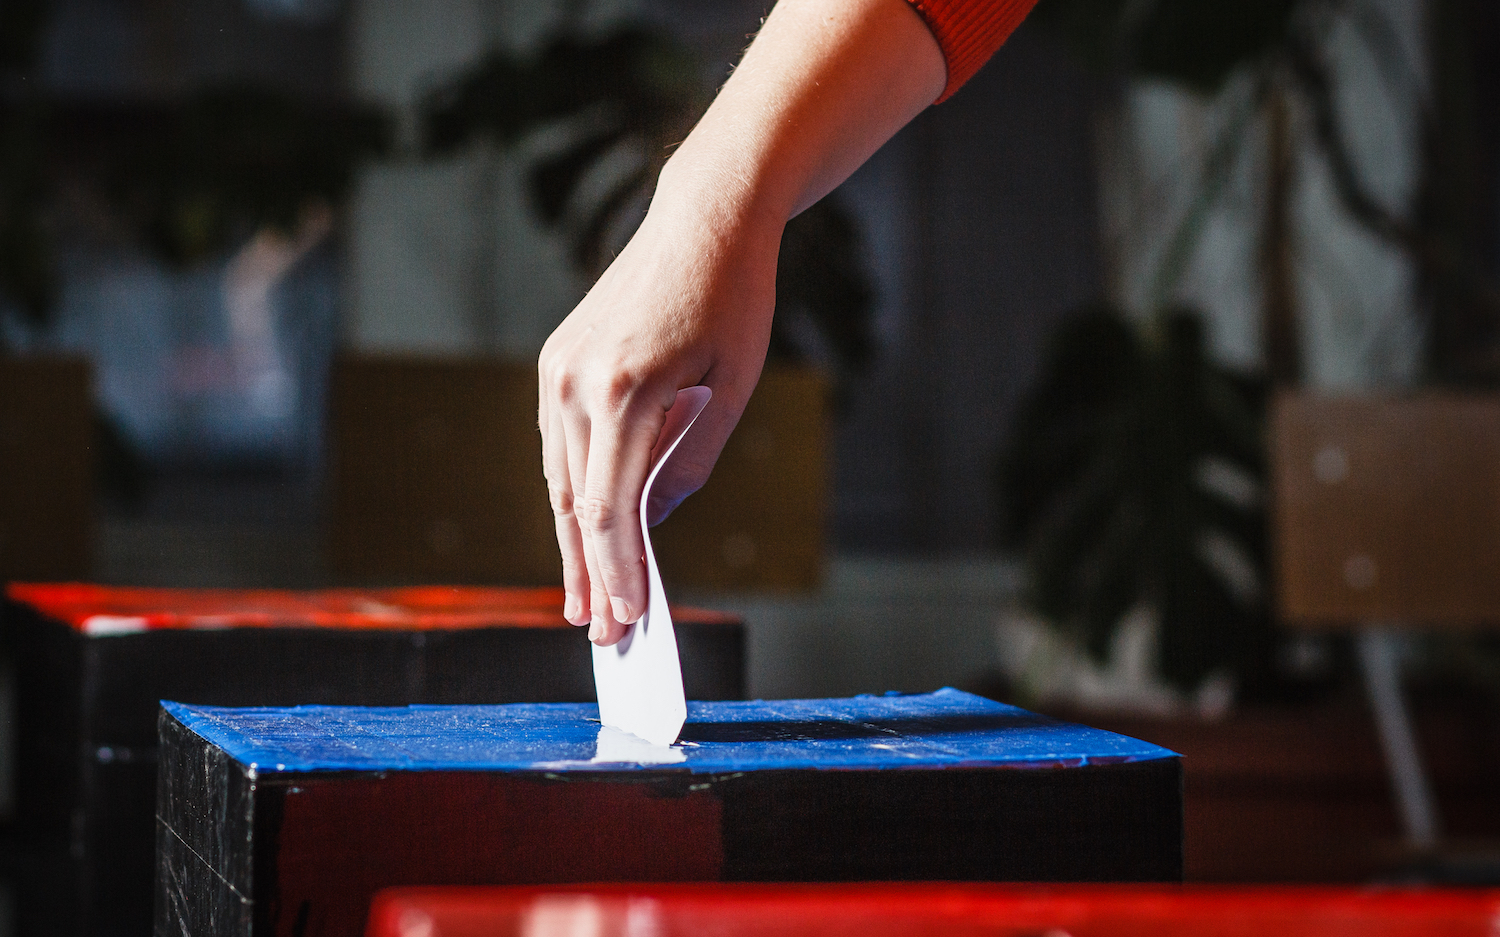 City of Denver to Pilot Blockchain Voting App in Coming Elections